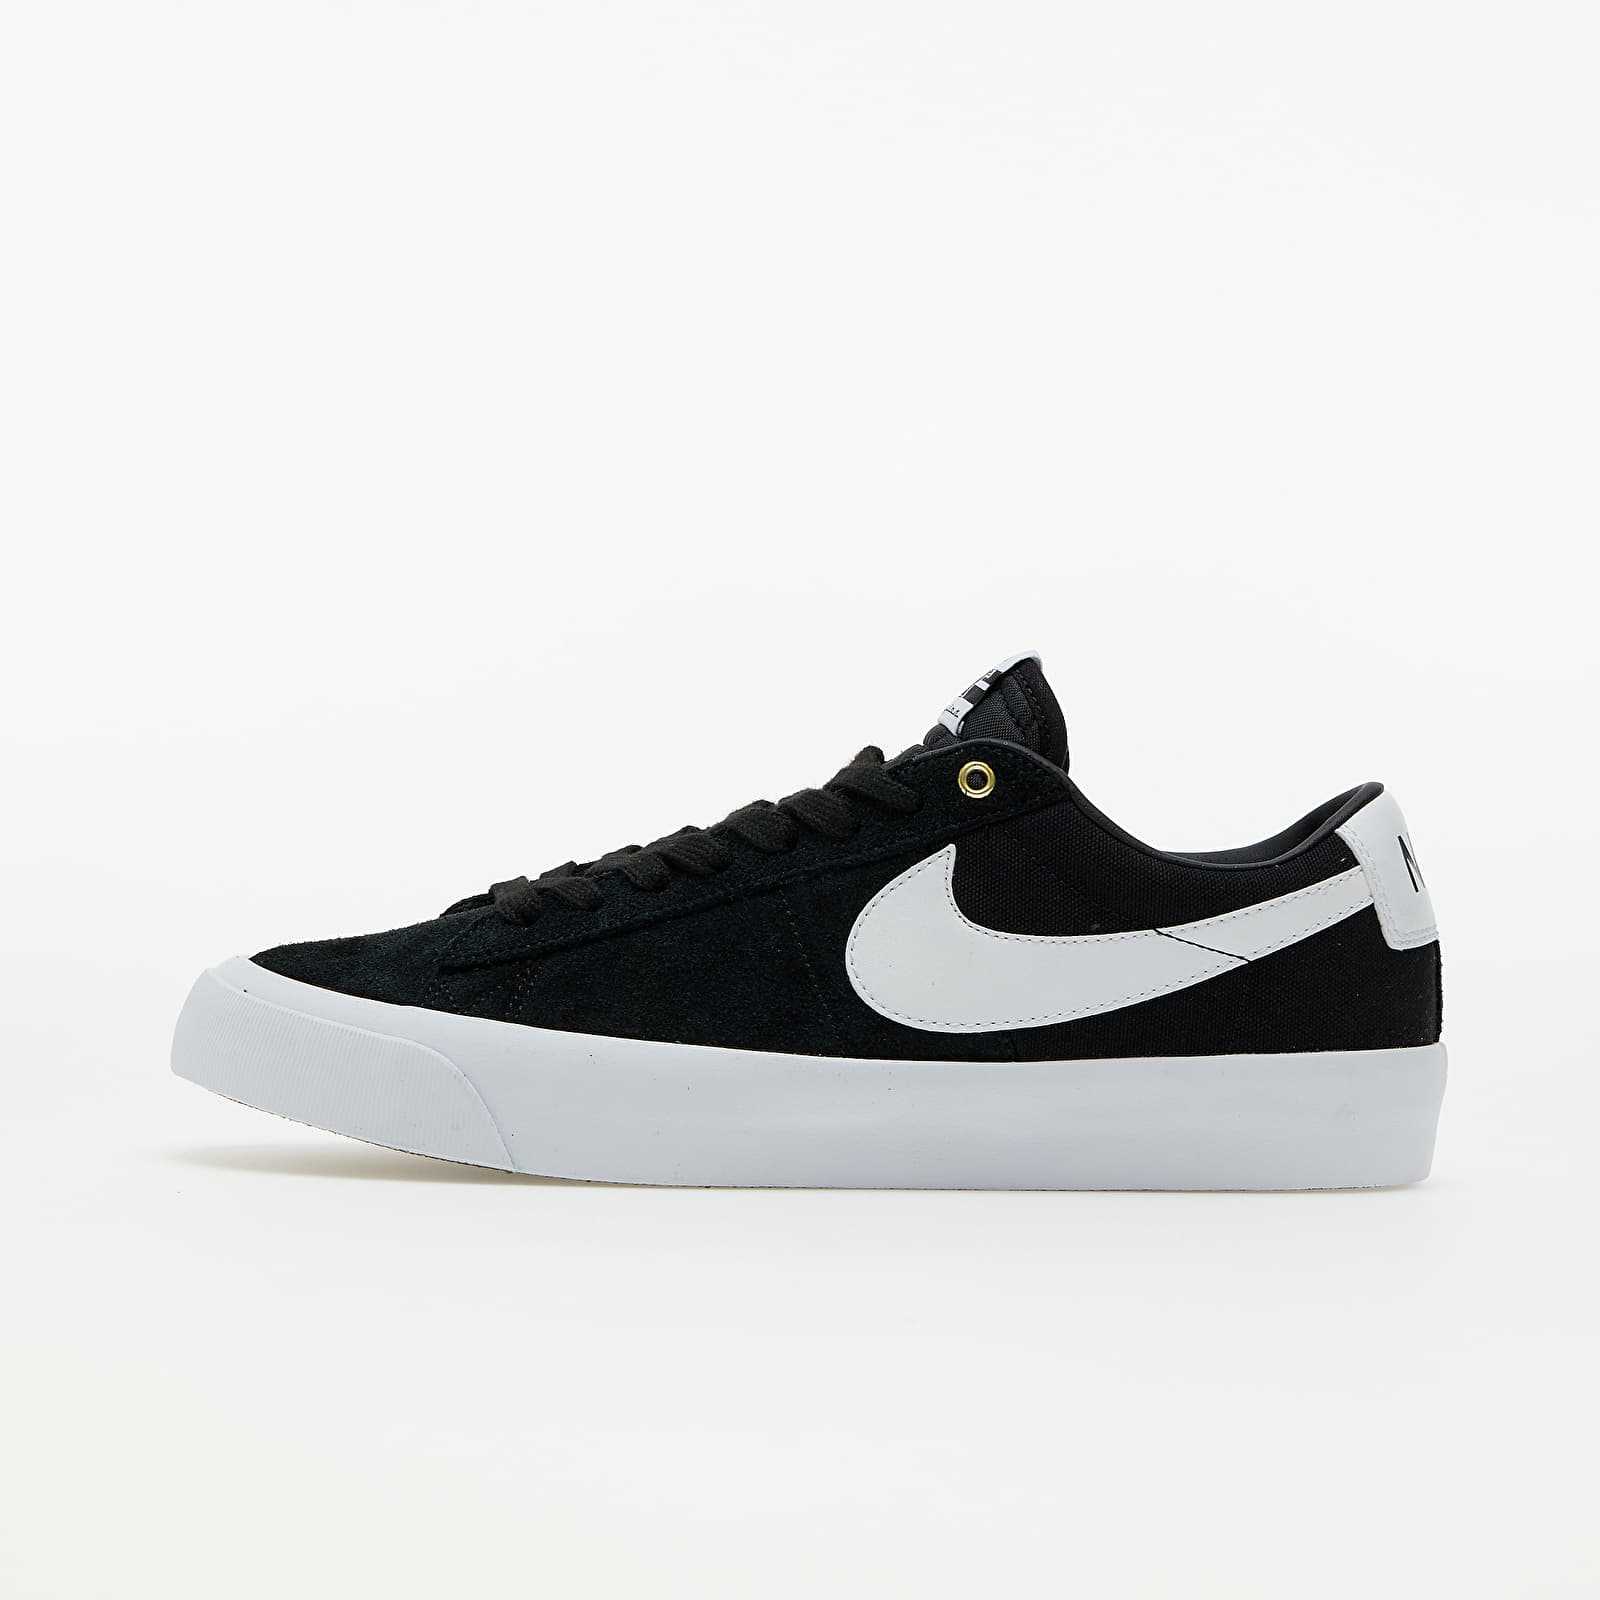 Nike SB Zoom Blazer Low Pro GT Black/ White-Black-Gum Light Brown EUR 40.5